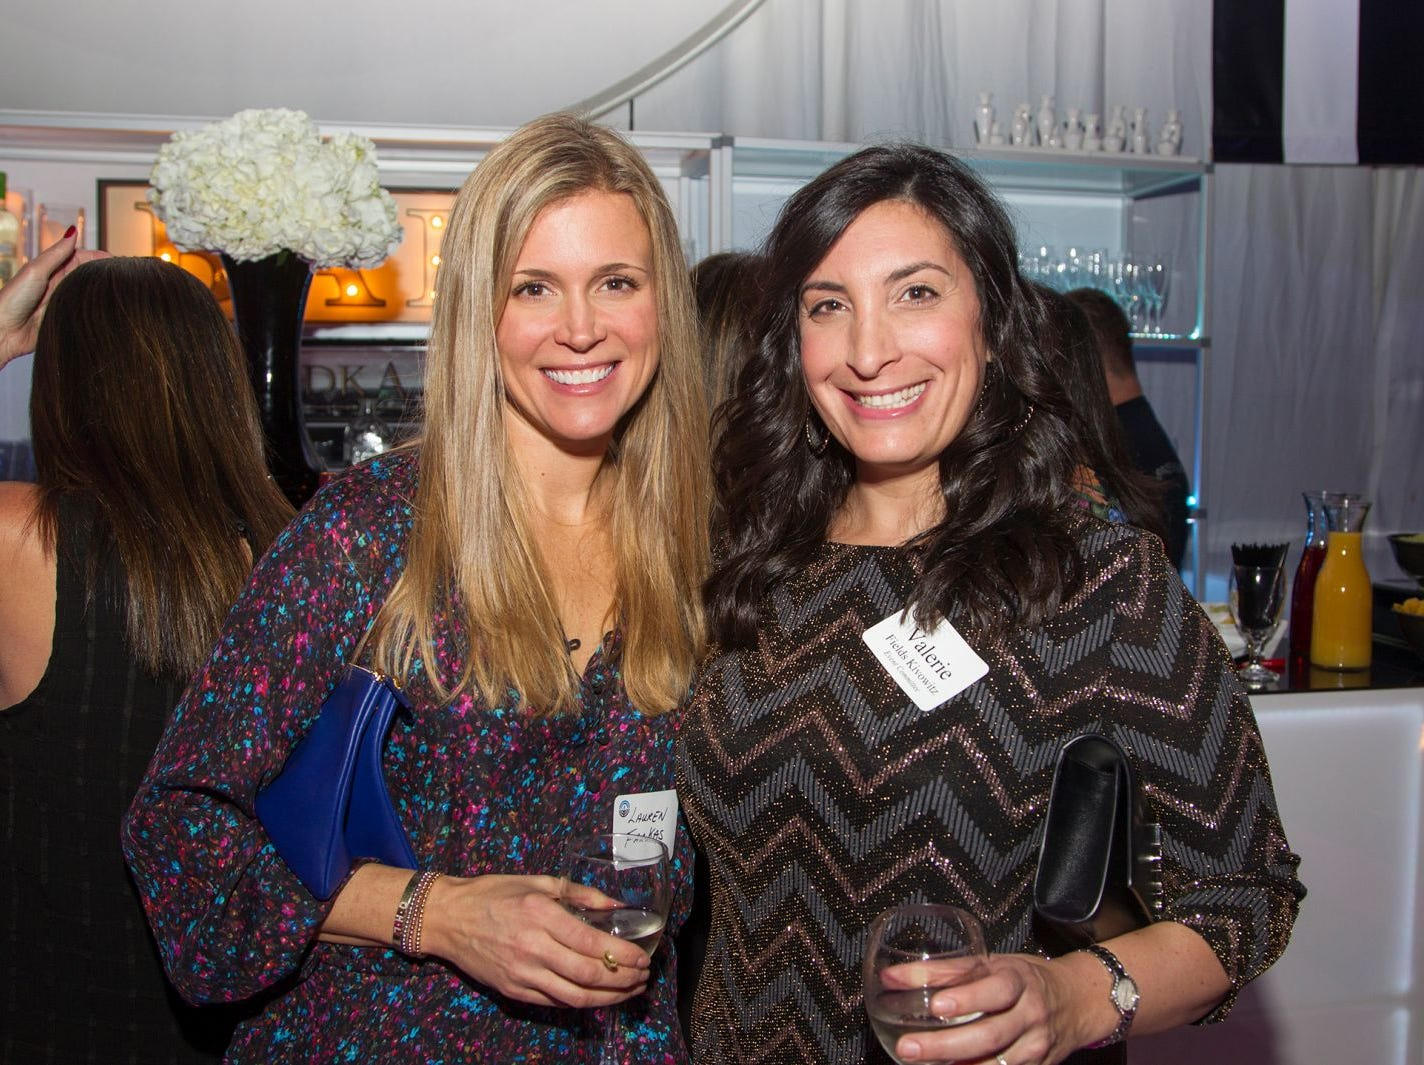 Lauren Farkas, Valerie Kivowitz. Jewish Federation of Northern New Jersey held its first Girl's Night Out dance party at Space in Englewood. 01/24/2019